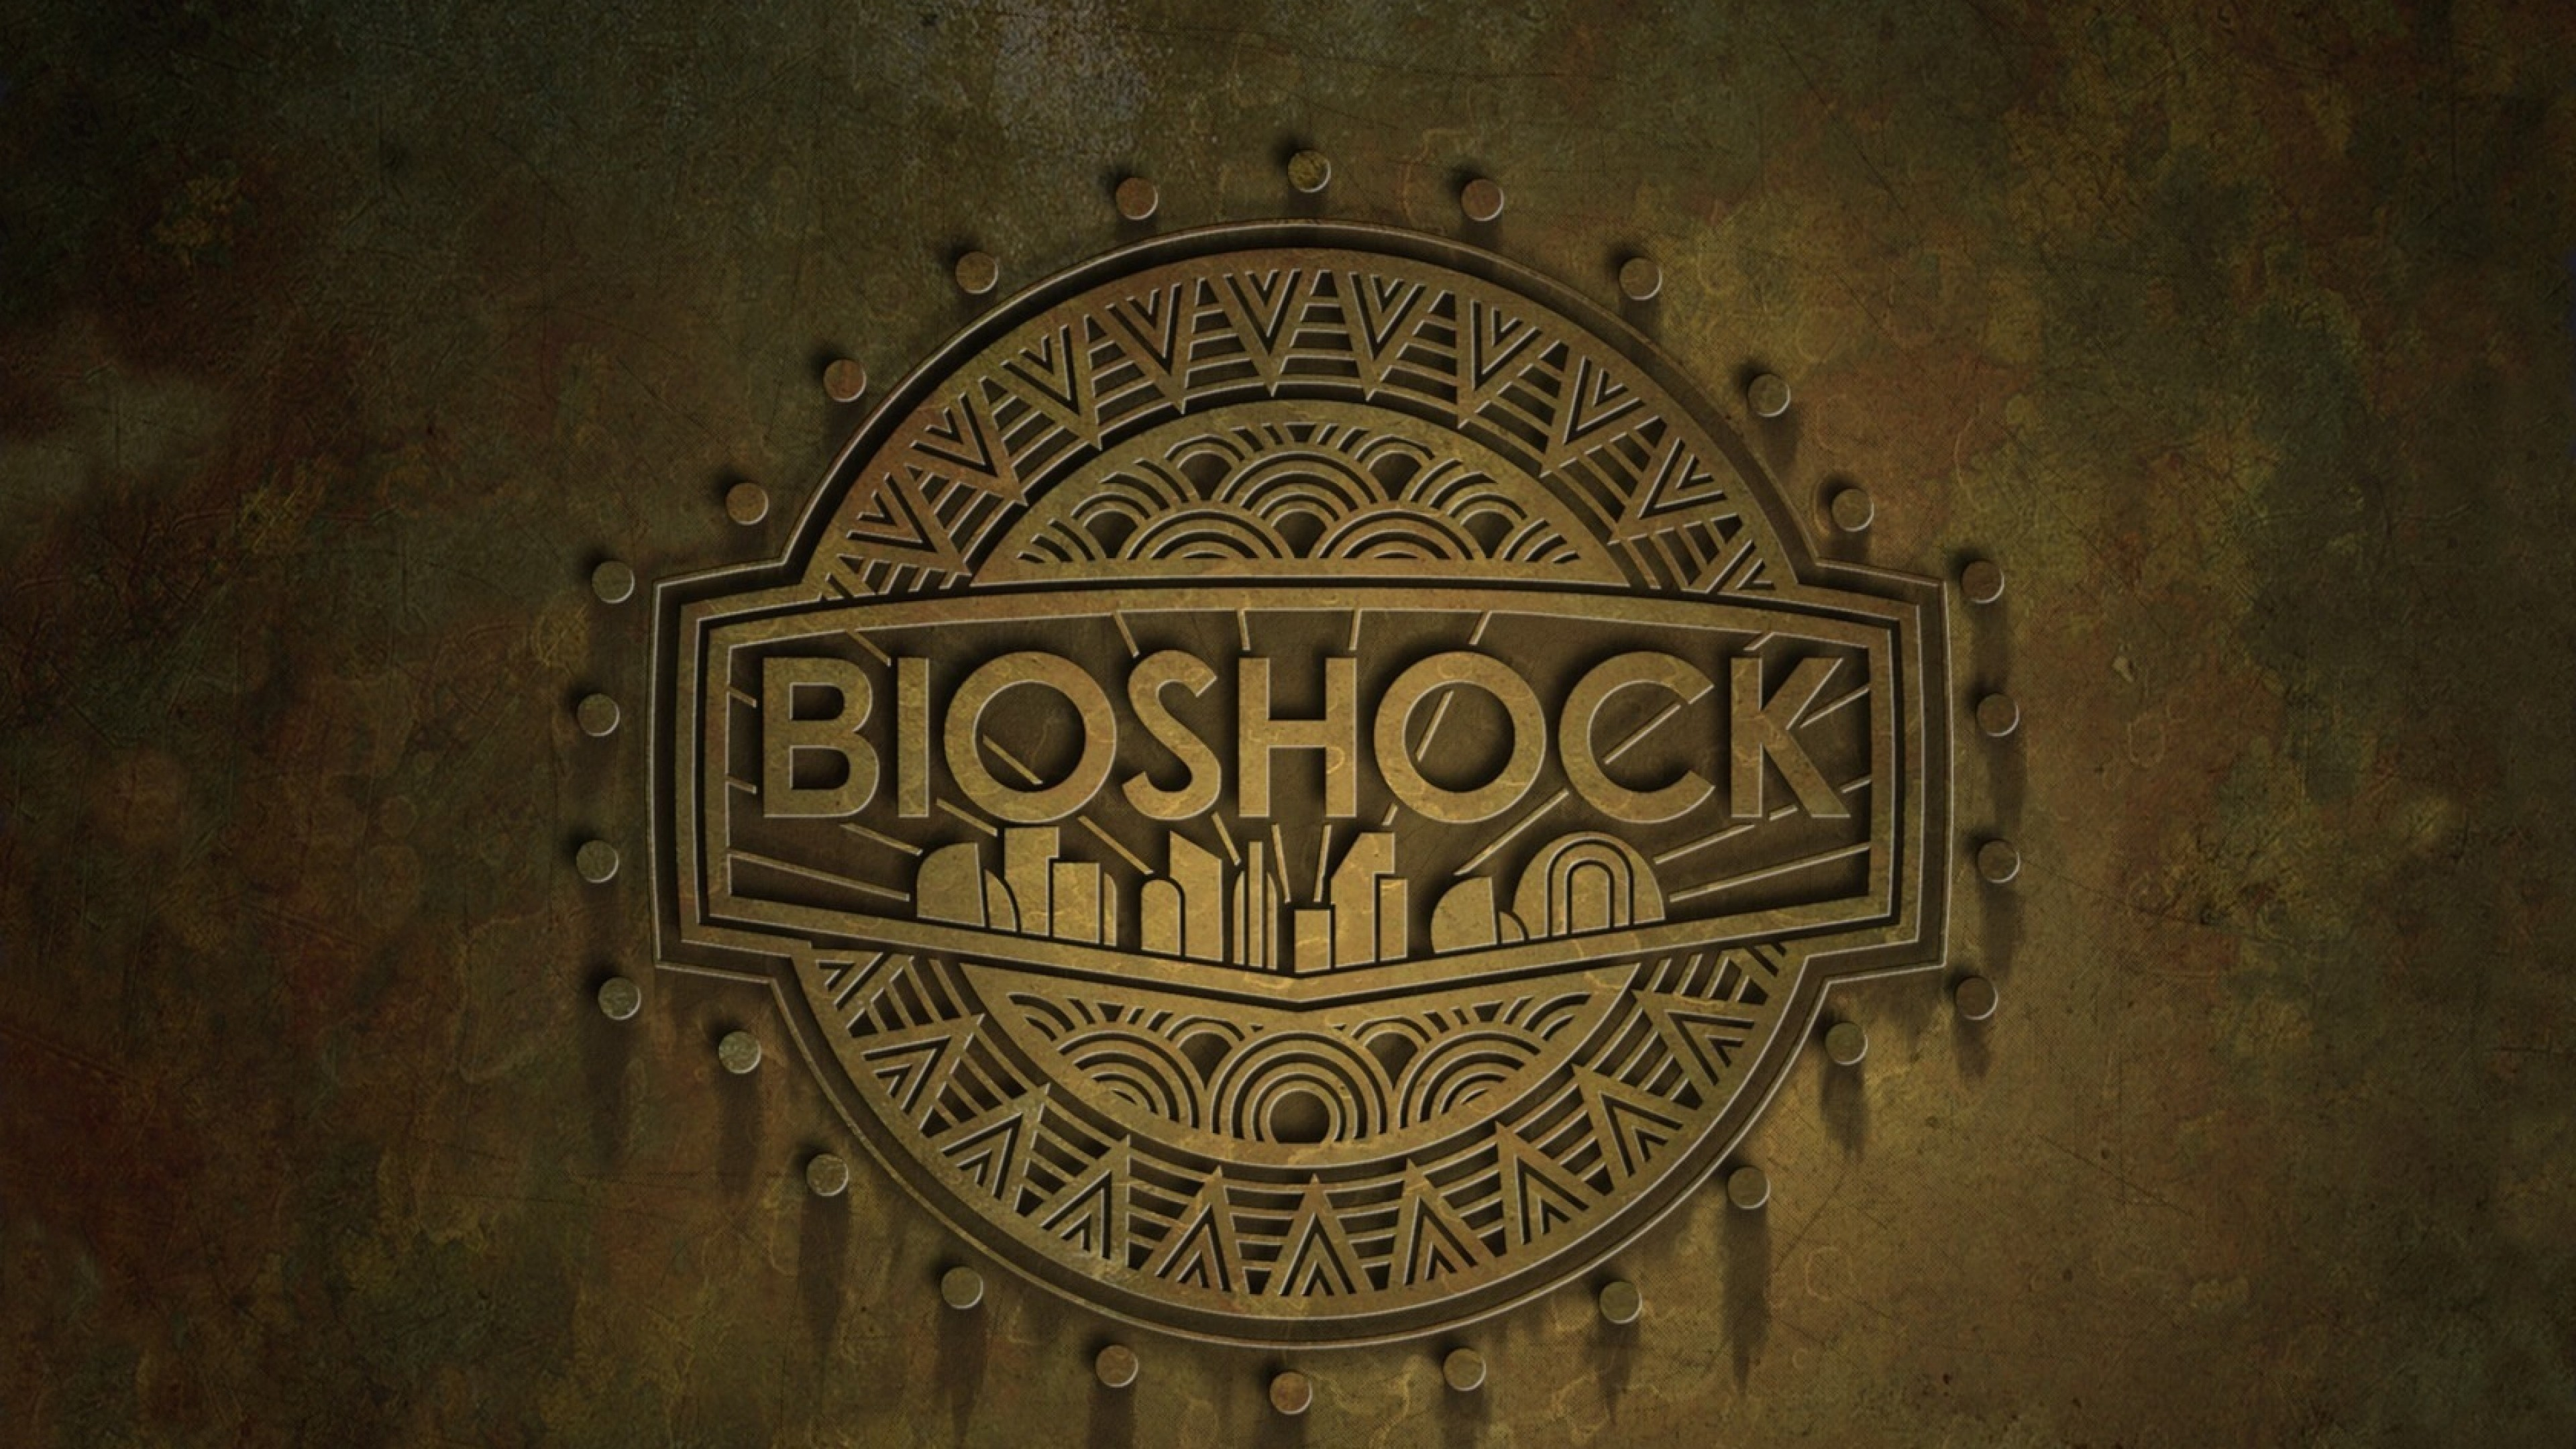 3840x2160 Preview wallpaper bioshock, name, background, city, emblem